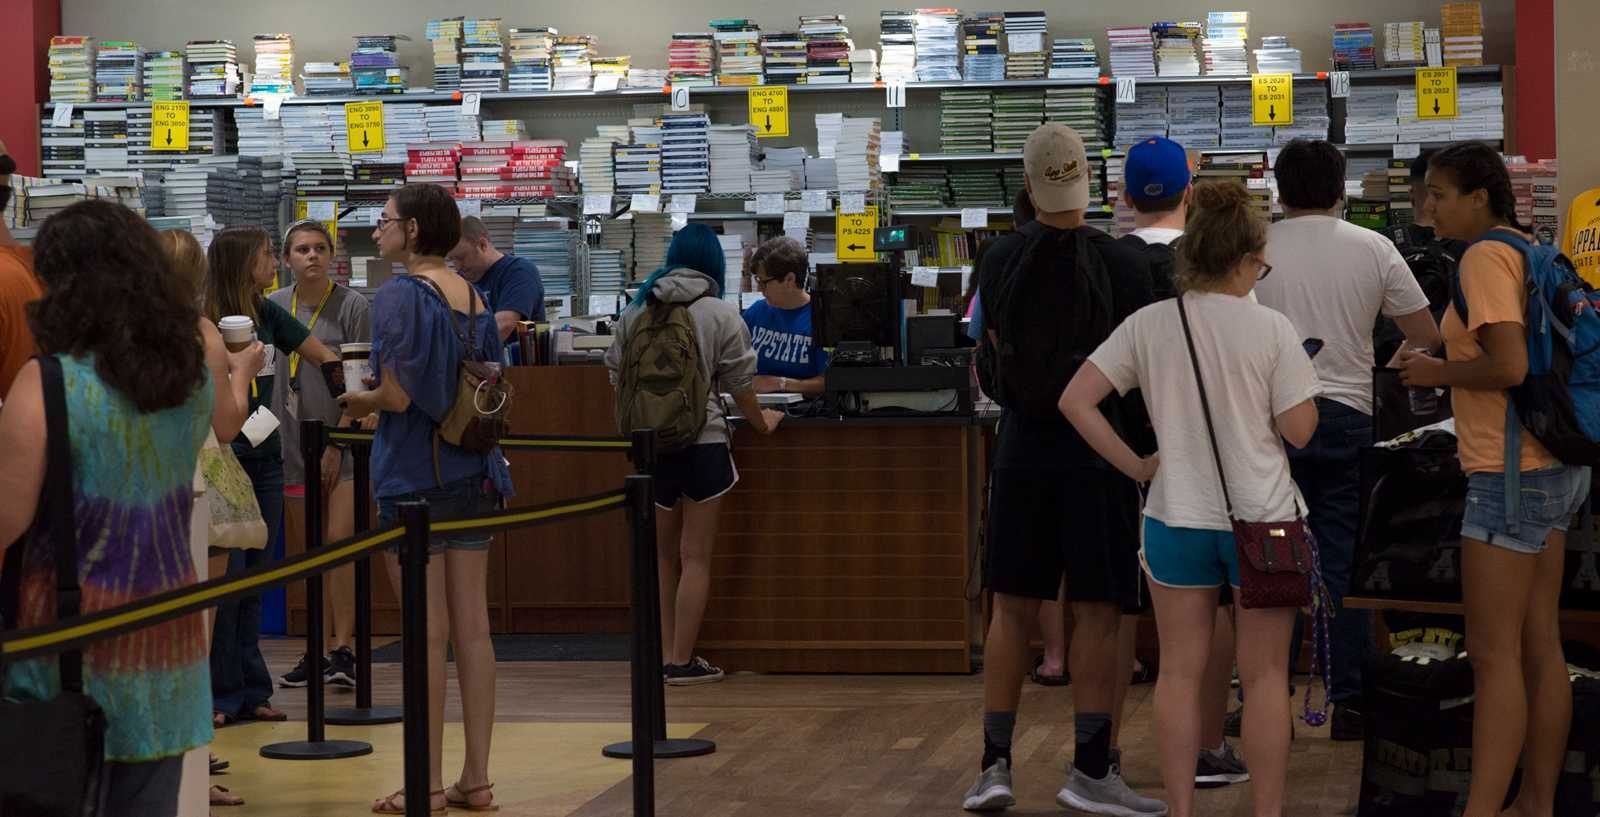 In addition to moving in to their dorms, many students picked up their textbook rentals from the bookstore. The bookstore is expected to be busy all next week as students wait in line for their textbooks. Photo by Dallas Linger, Photo Editor